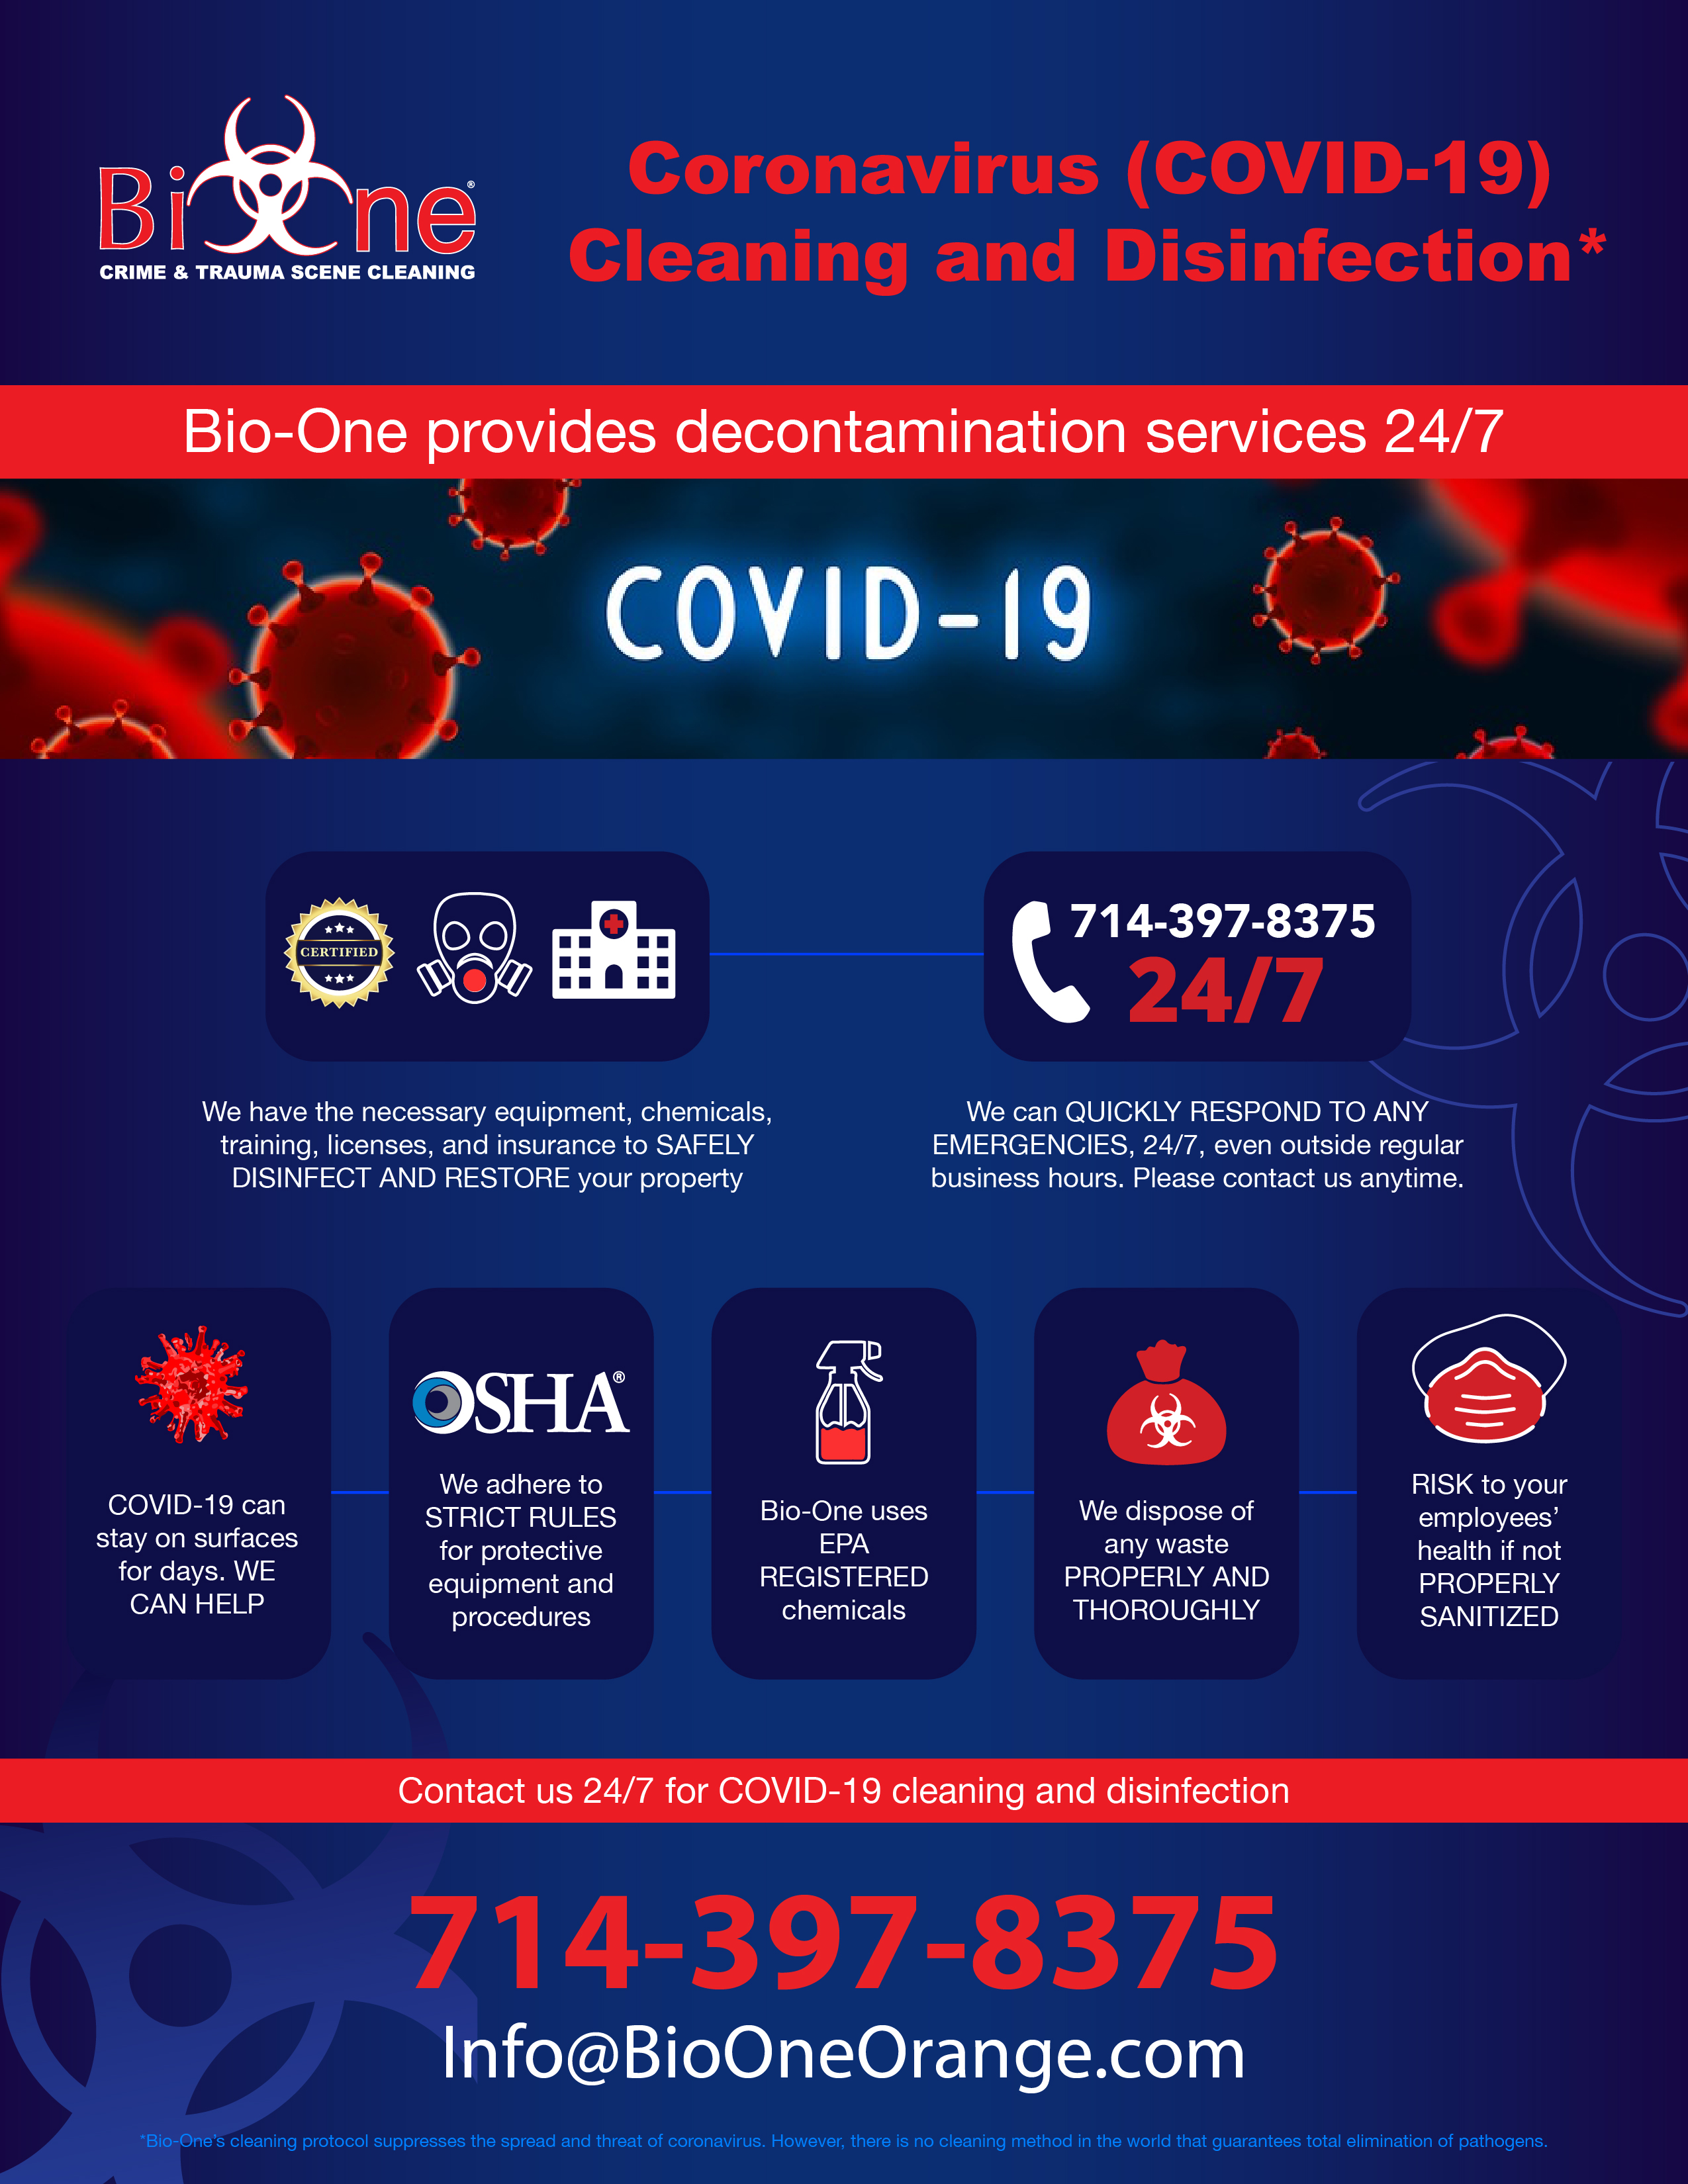 COVID-19 Cleaning and Disinfection Service